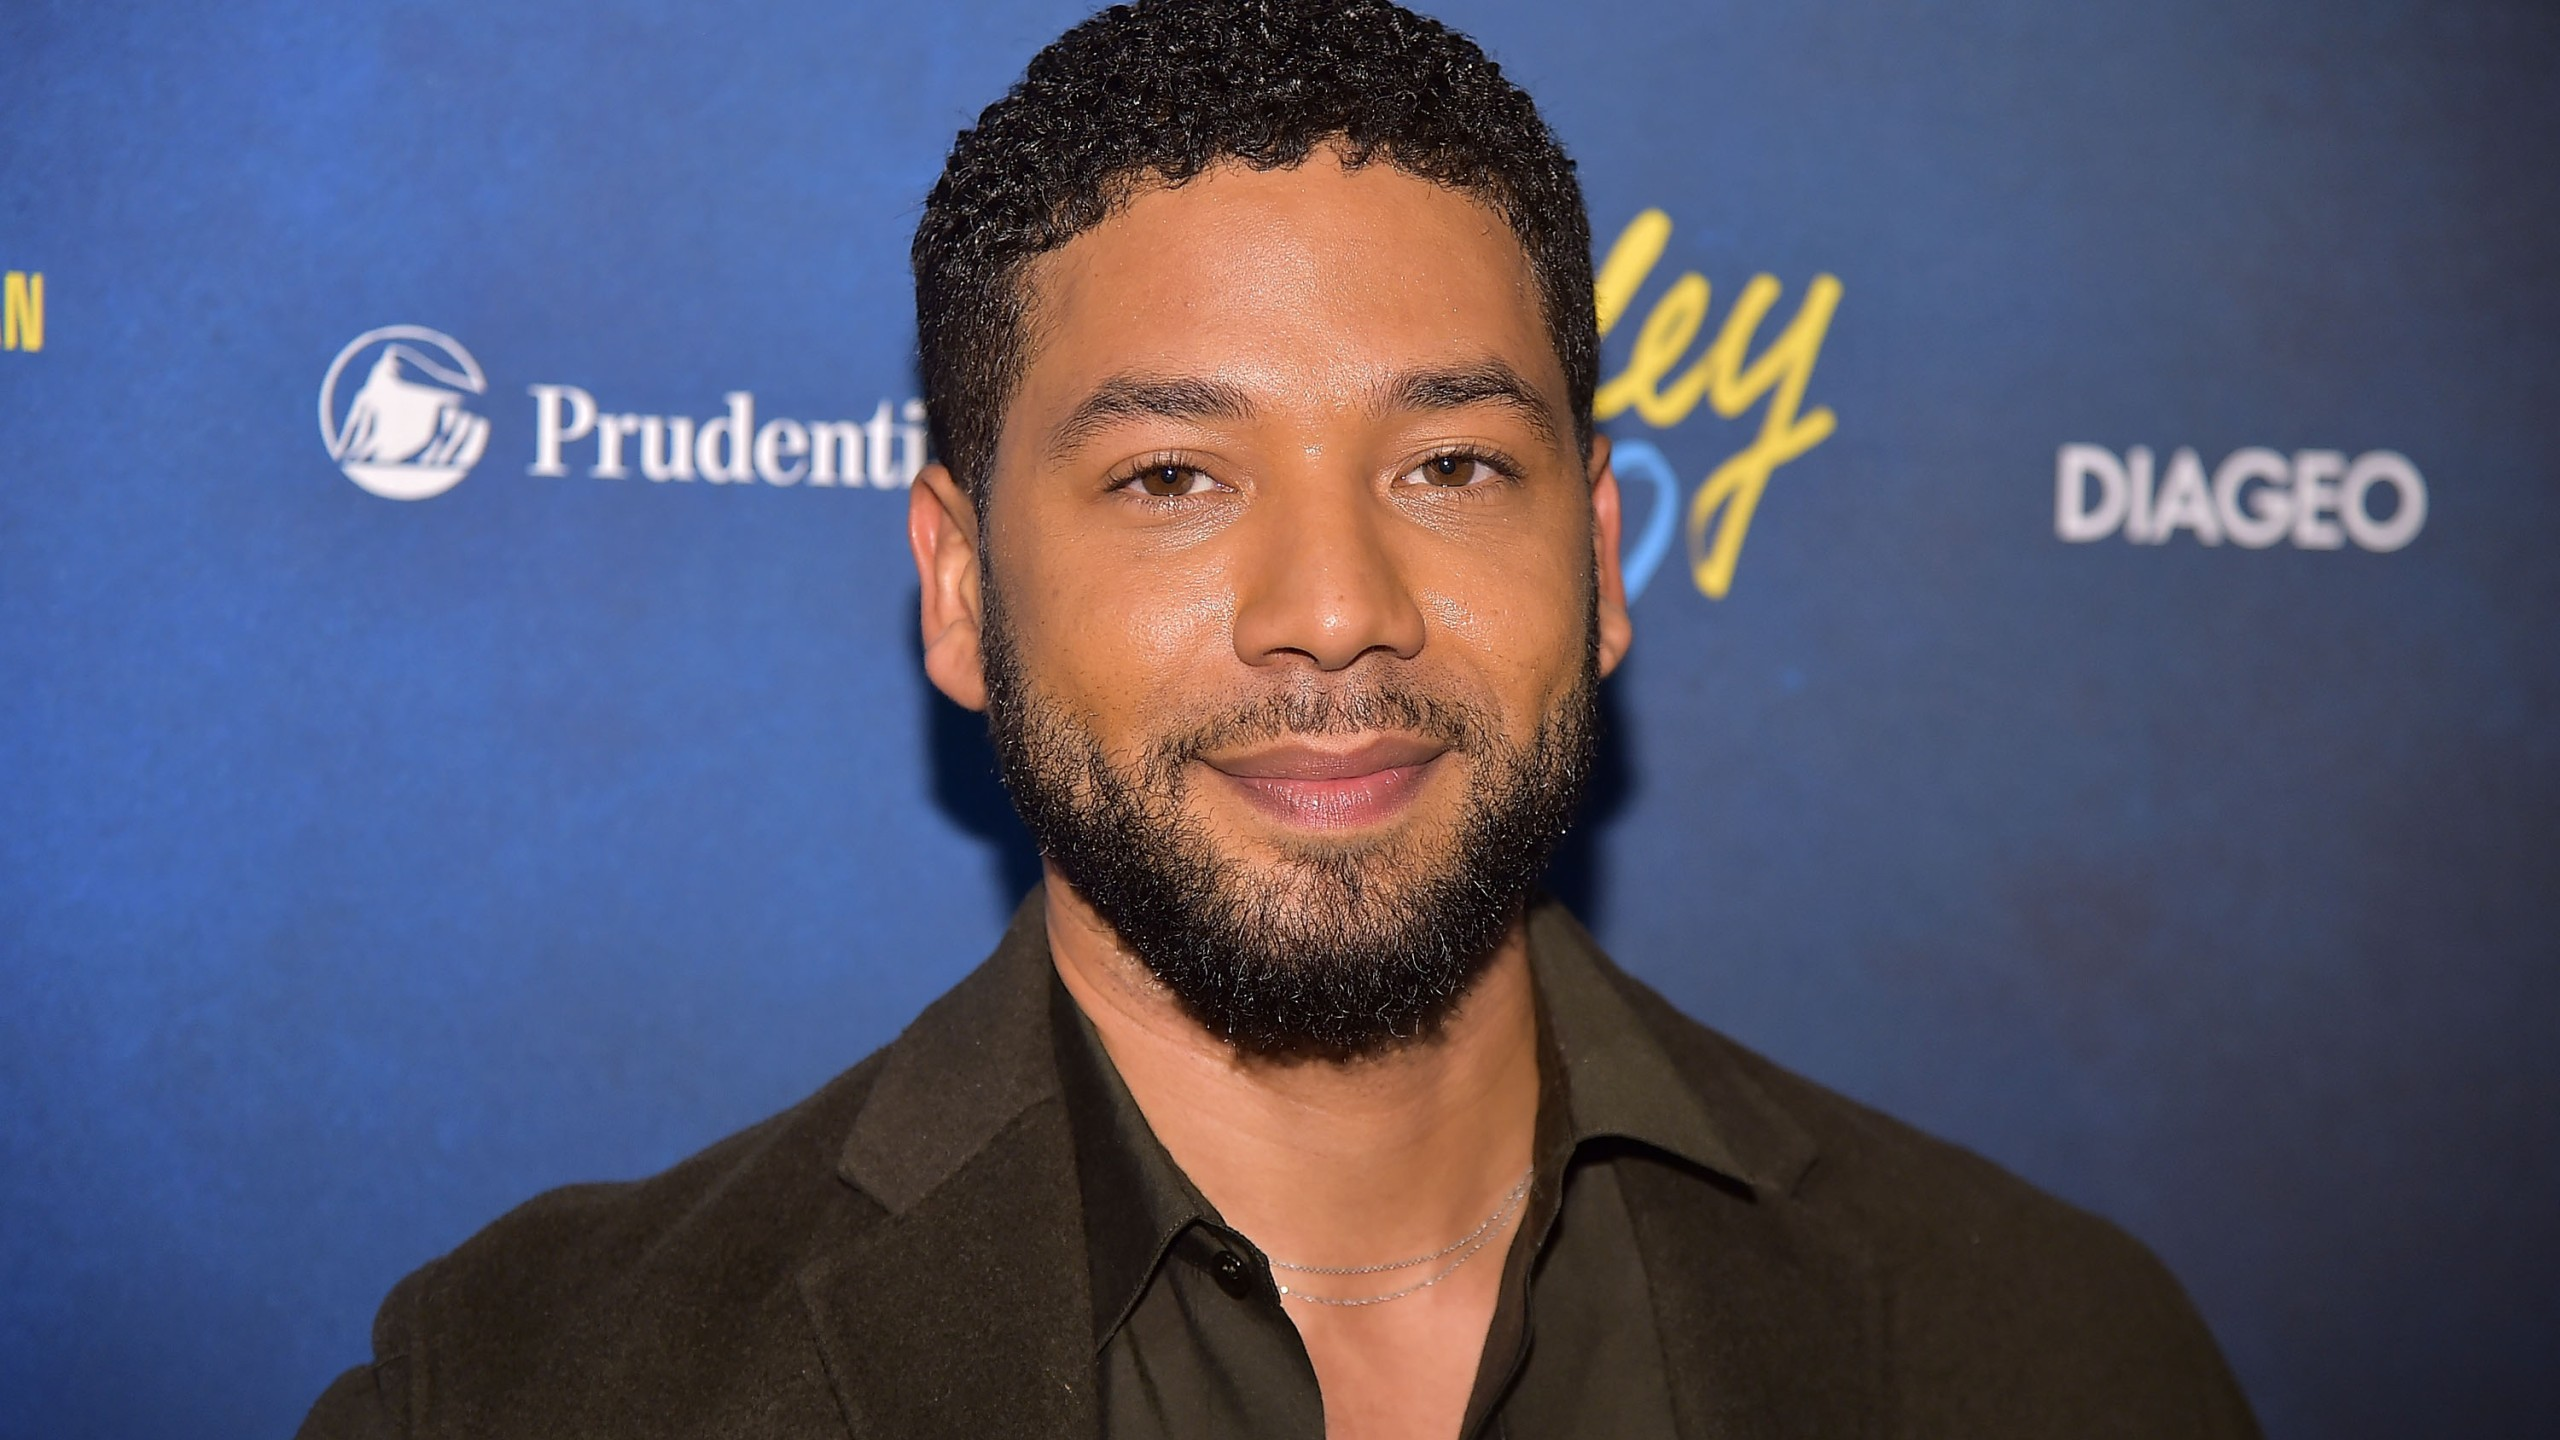 Jussie Smollett attends the Alvin Ailey American Dance Theater's 60th Anniversary Opening Night Gala Benefit at New York City Center on November 28, 2018. (Credit:Theo Wargo/Getty Images)